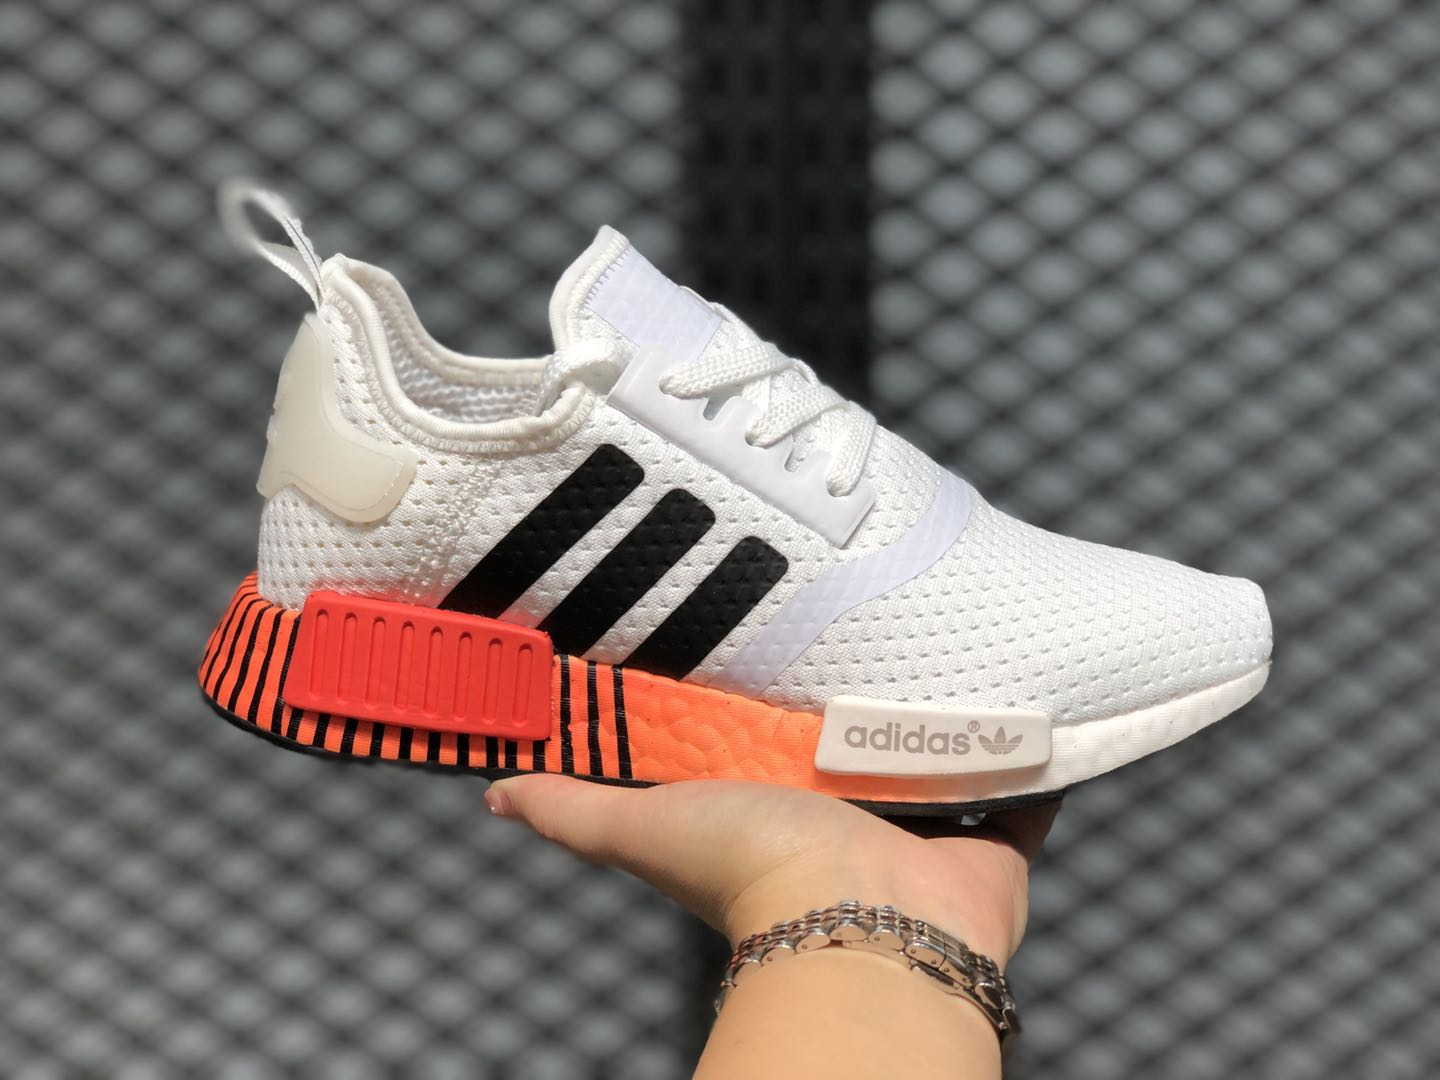 Generador regalo Viva  2020 New Adidas NMD R1 Glitch White/Black/Solar Red FV3648 | Evesham-nj